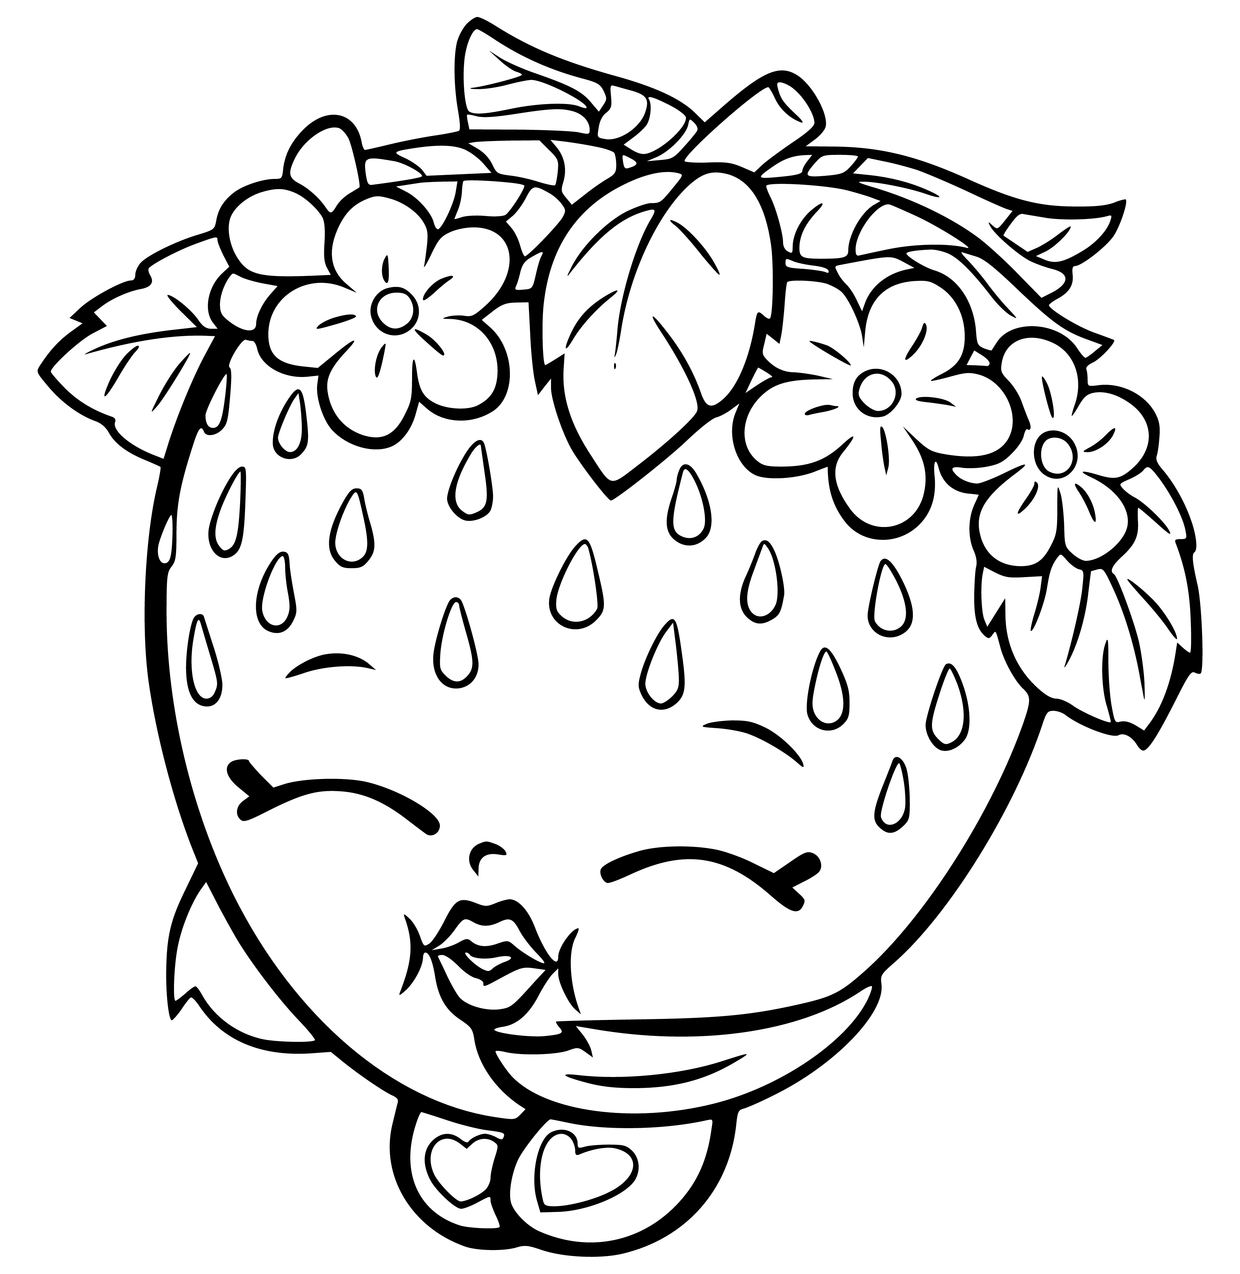 coloring pages shopkin shopkins coloring pages best coloring pages for kids shopkin coloring pages